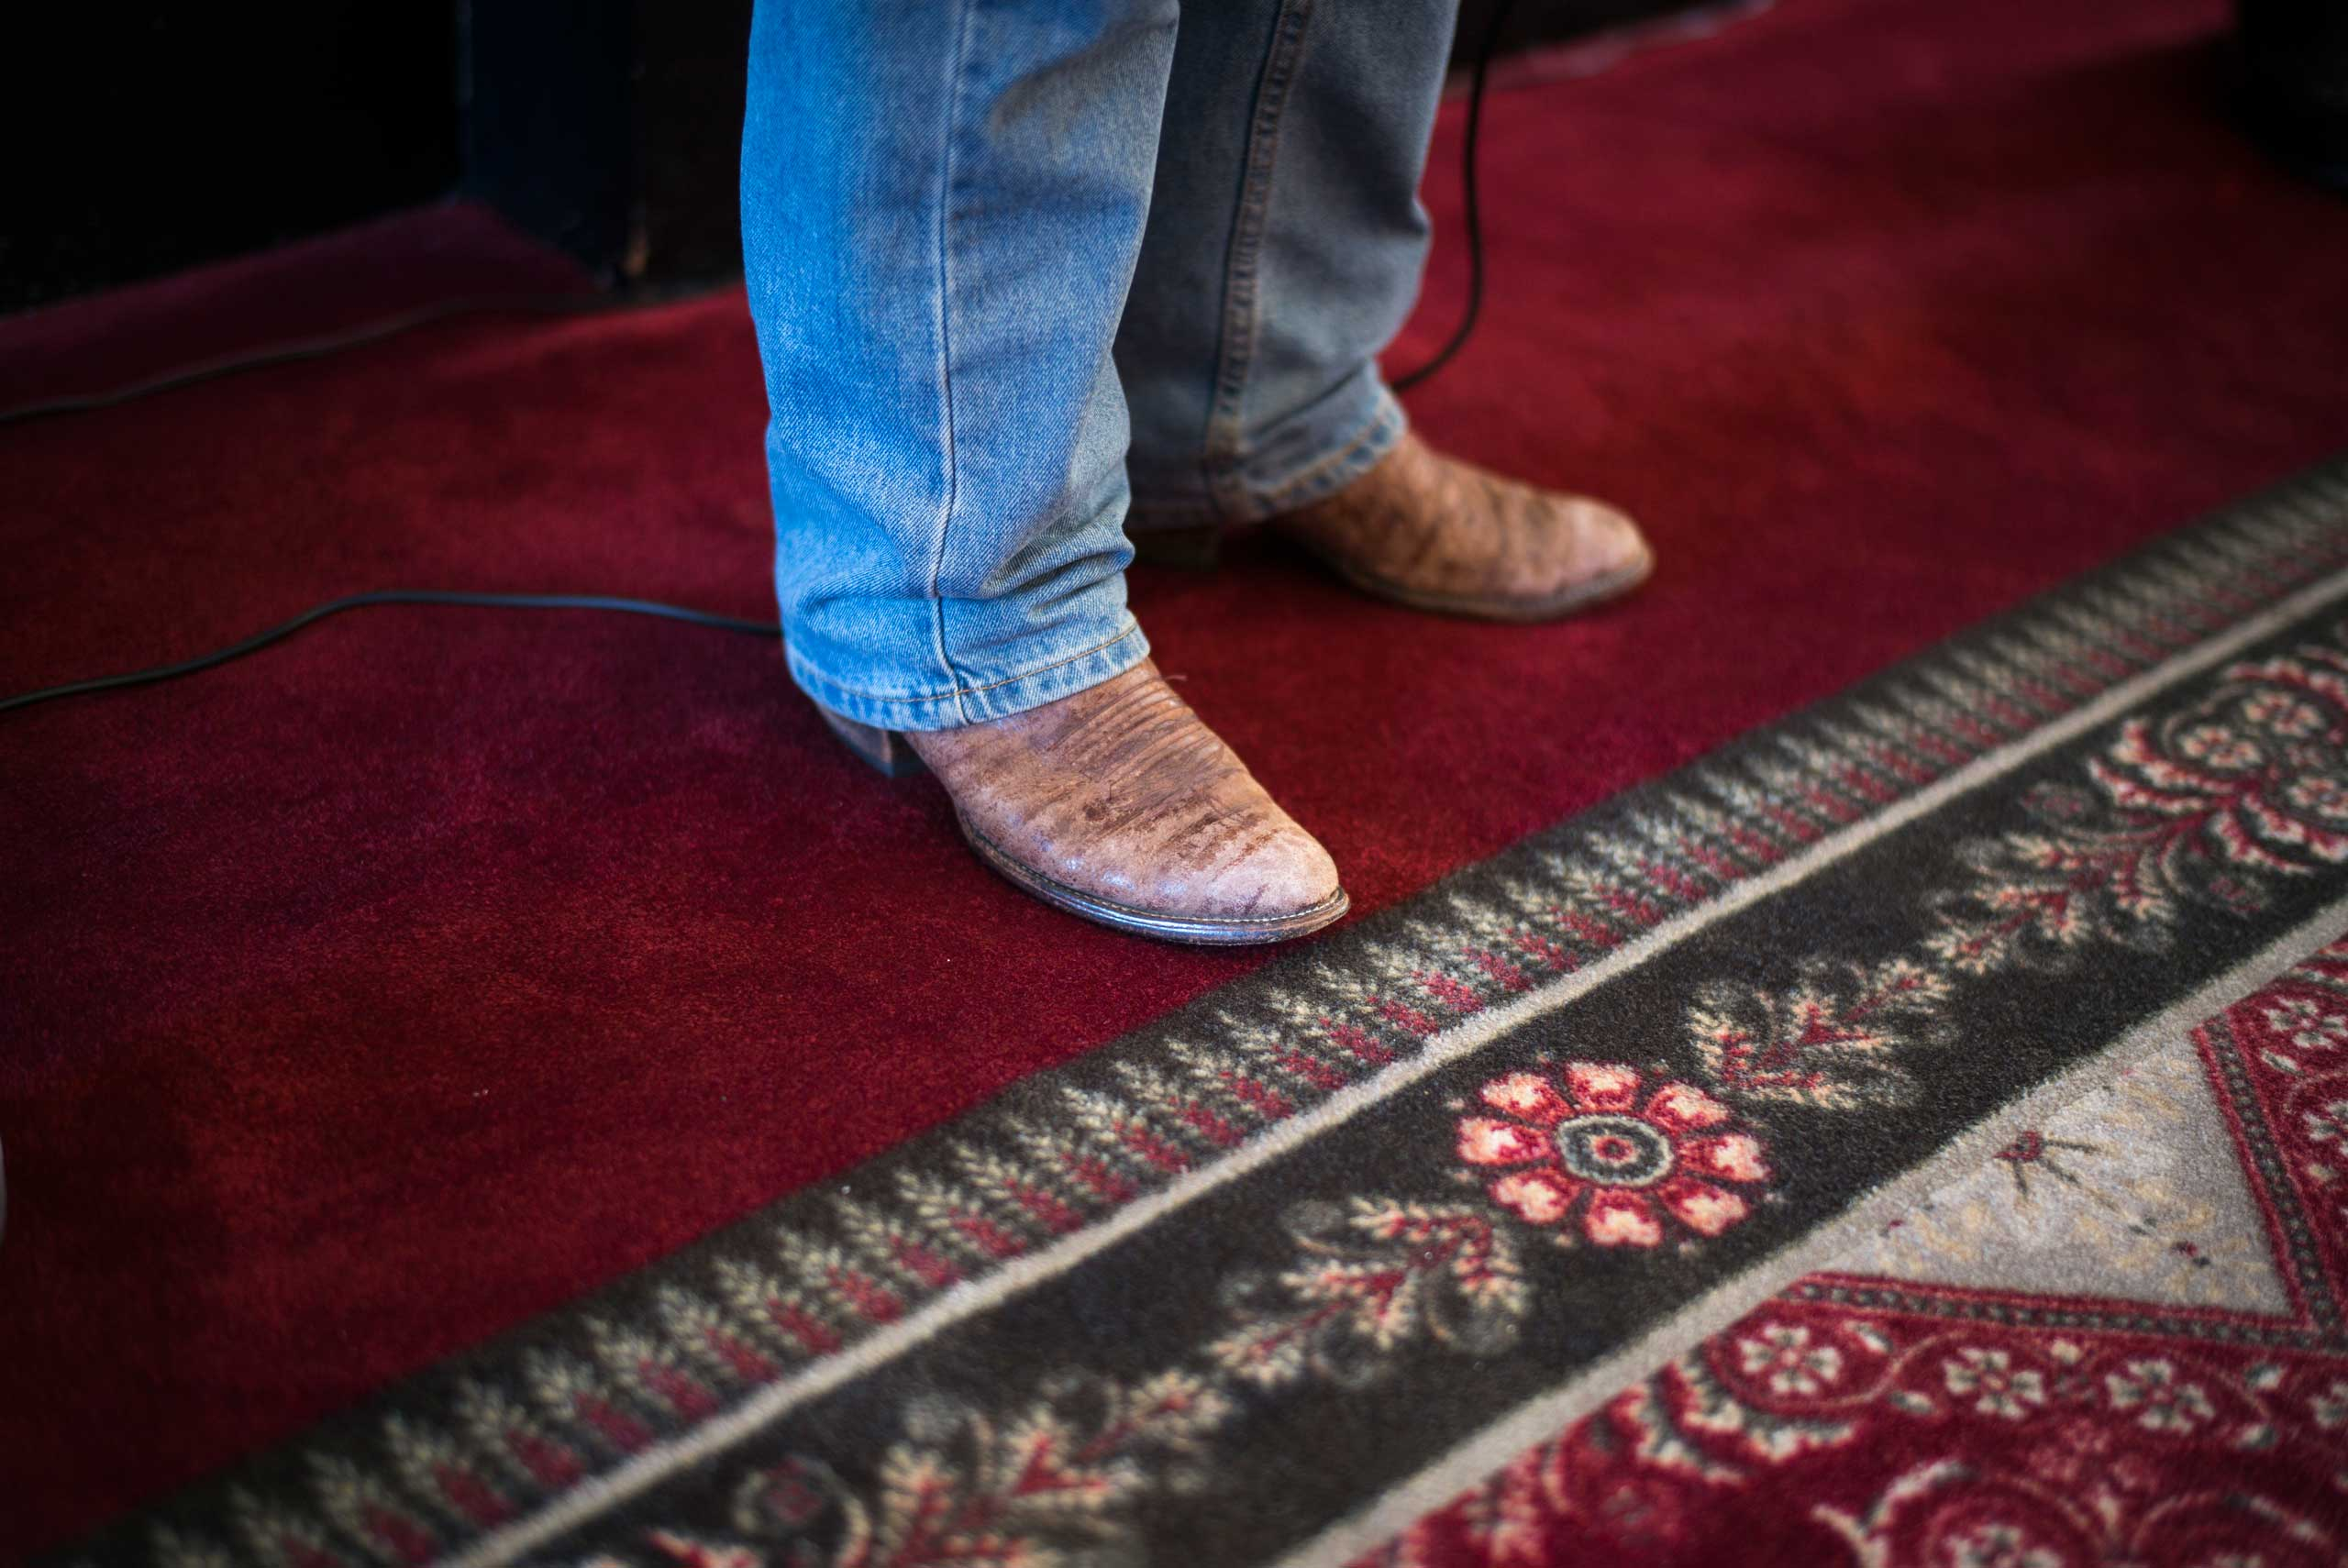 Senator Rand Paul's boots are seen as he talks with students at the University of South Carolina in Columbia, S.C. on Sept. 30th, 2014.